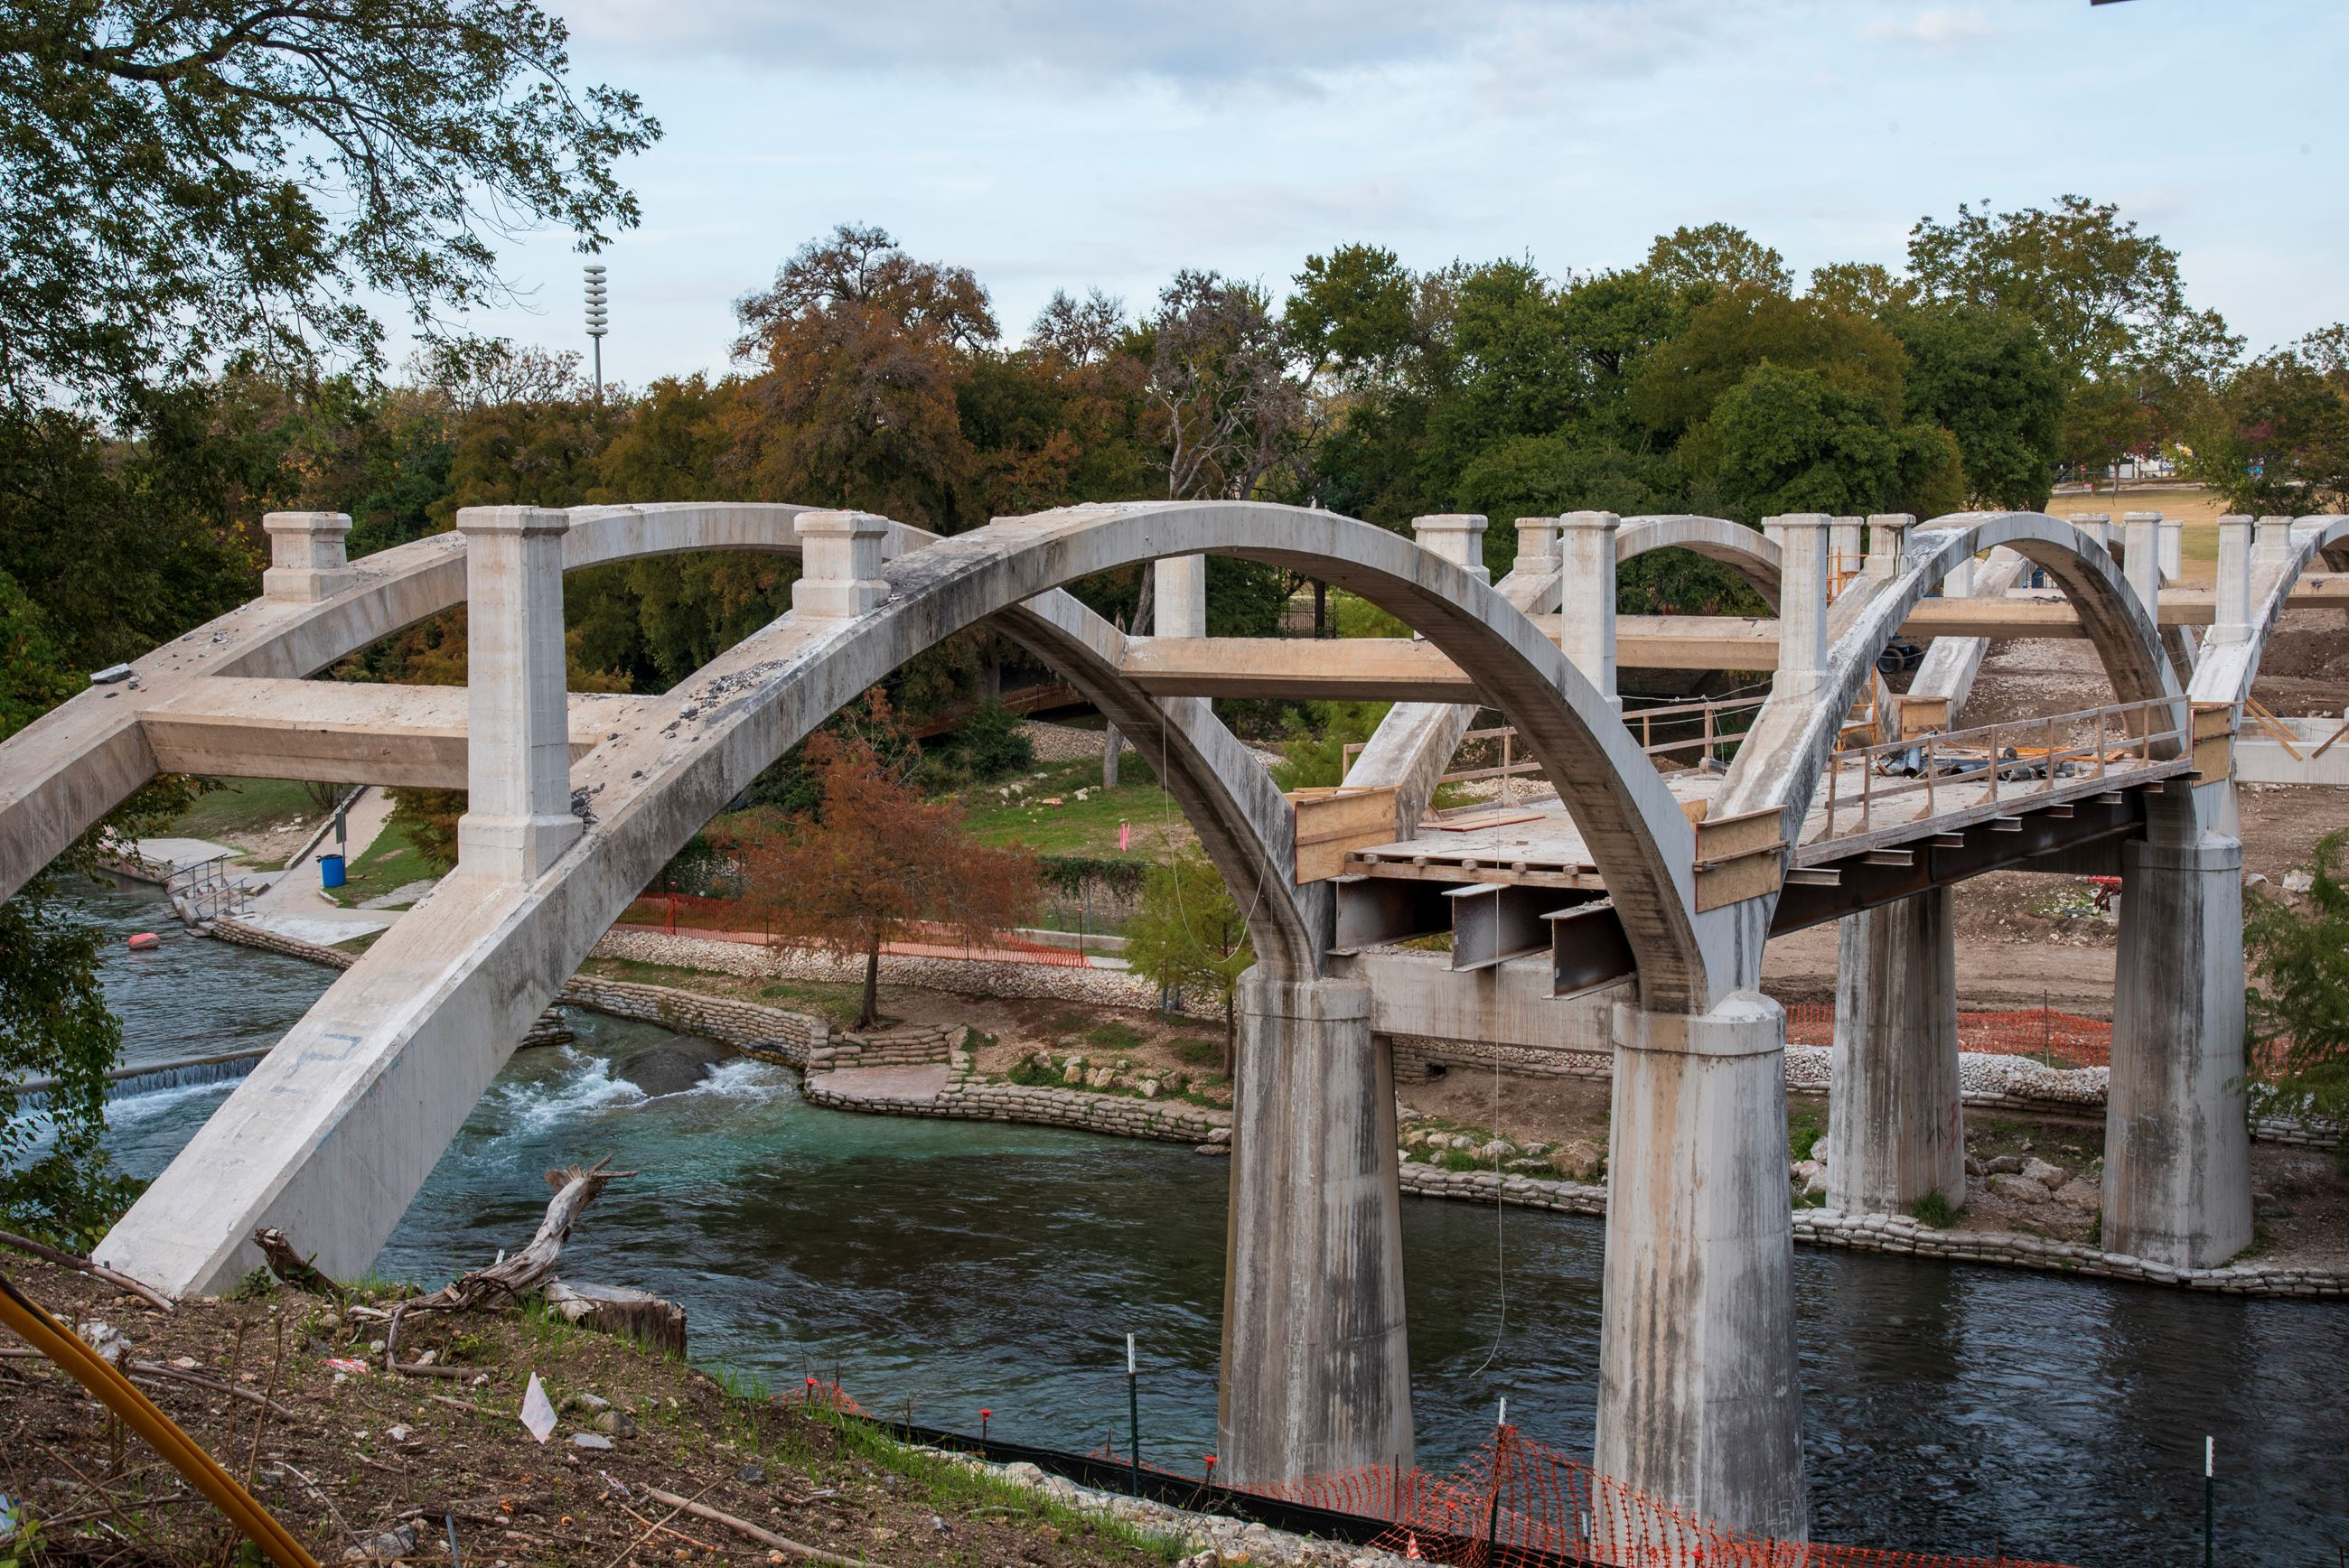 San Antonio Bridge Construction Progress